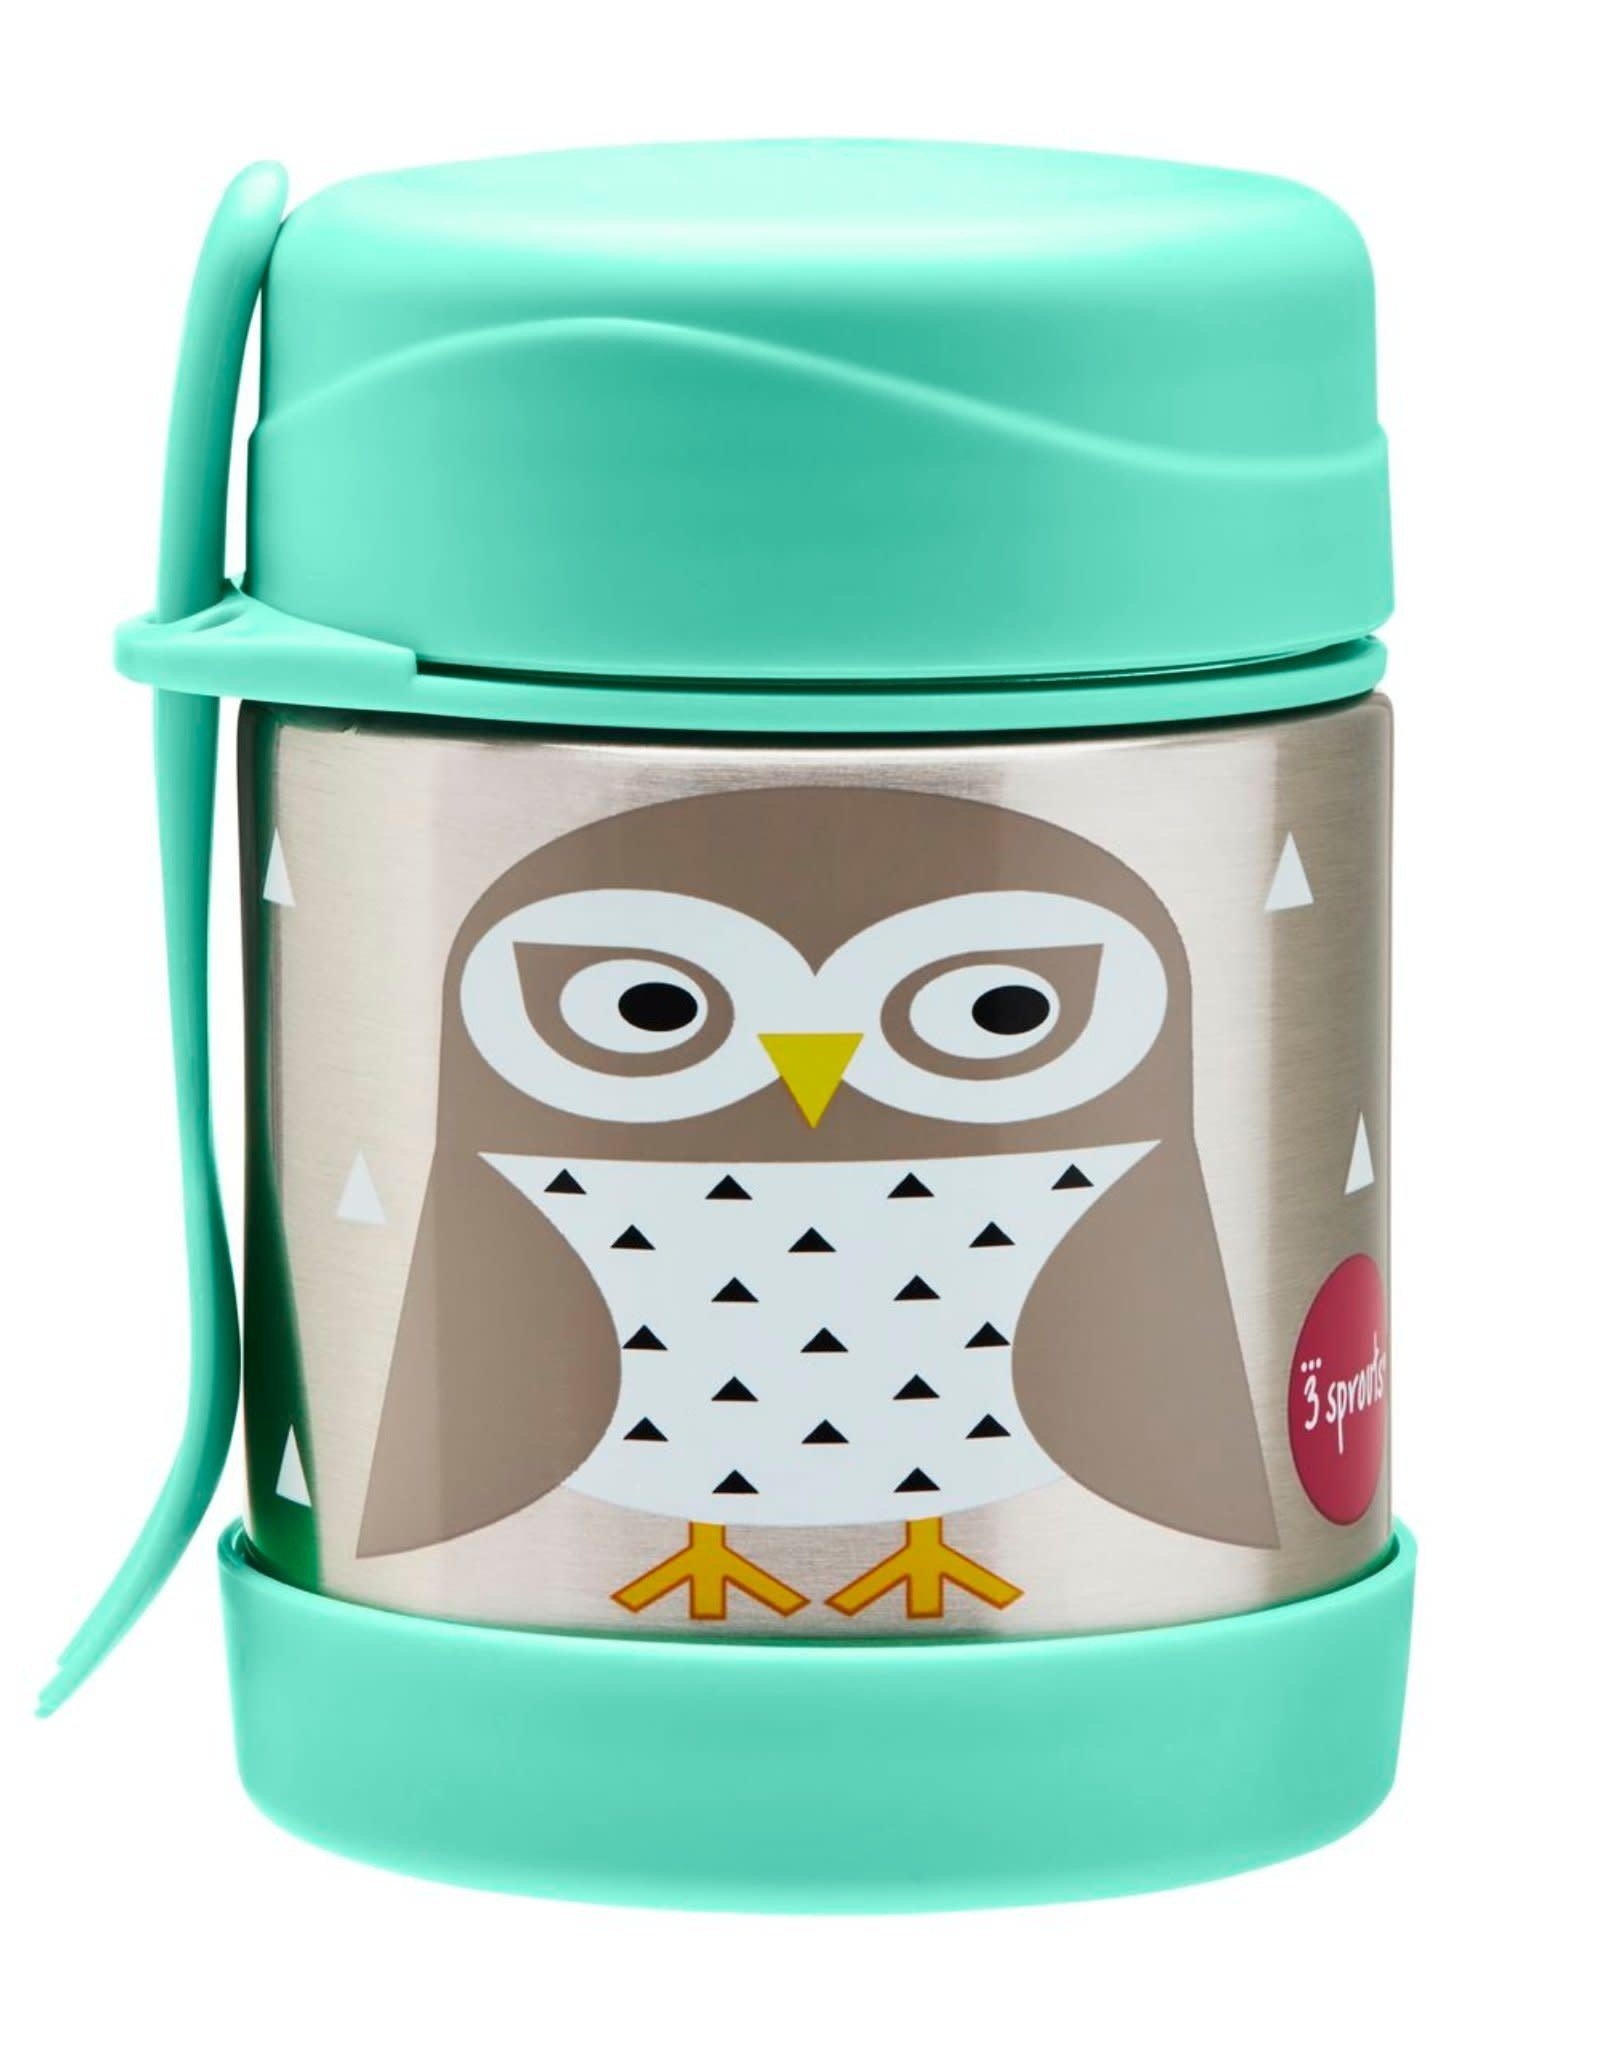 3 Sprouts Stainless Steel Food Jar - Owl